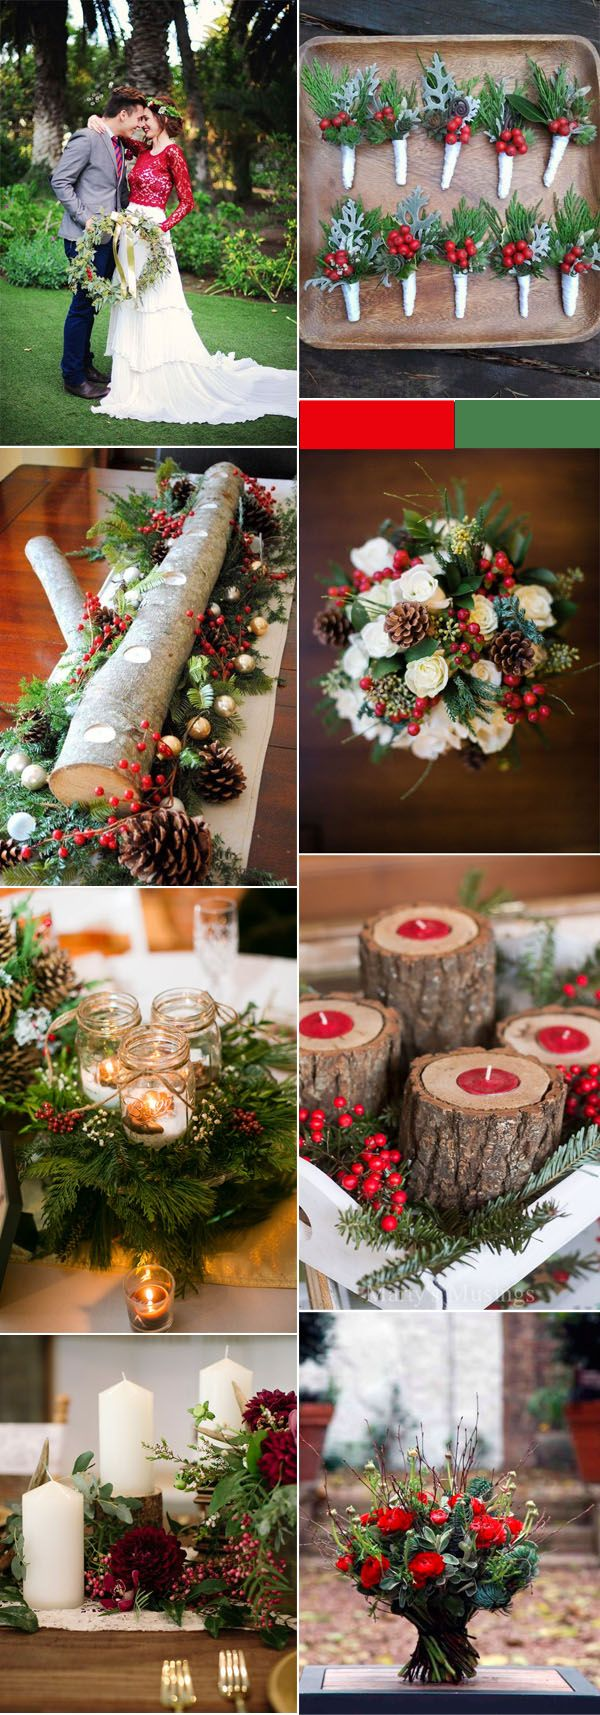 Super Unique Winter Wedding Ideas That Inspire